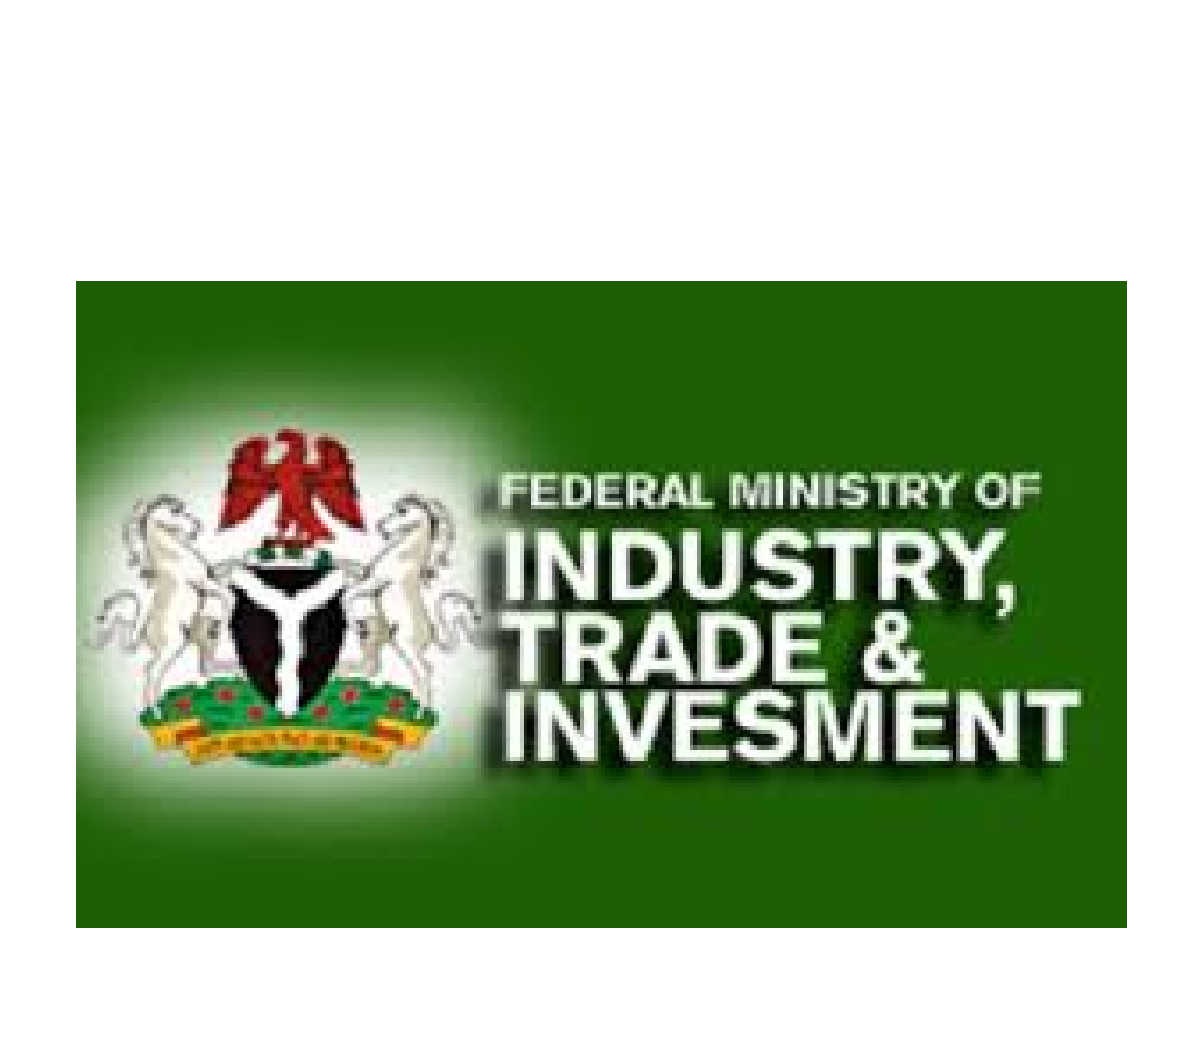 ministry of industry trade and investment